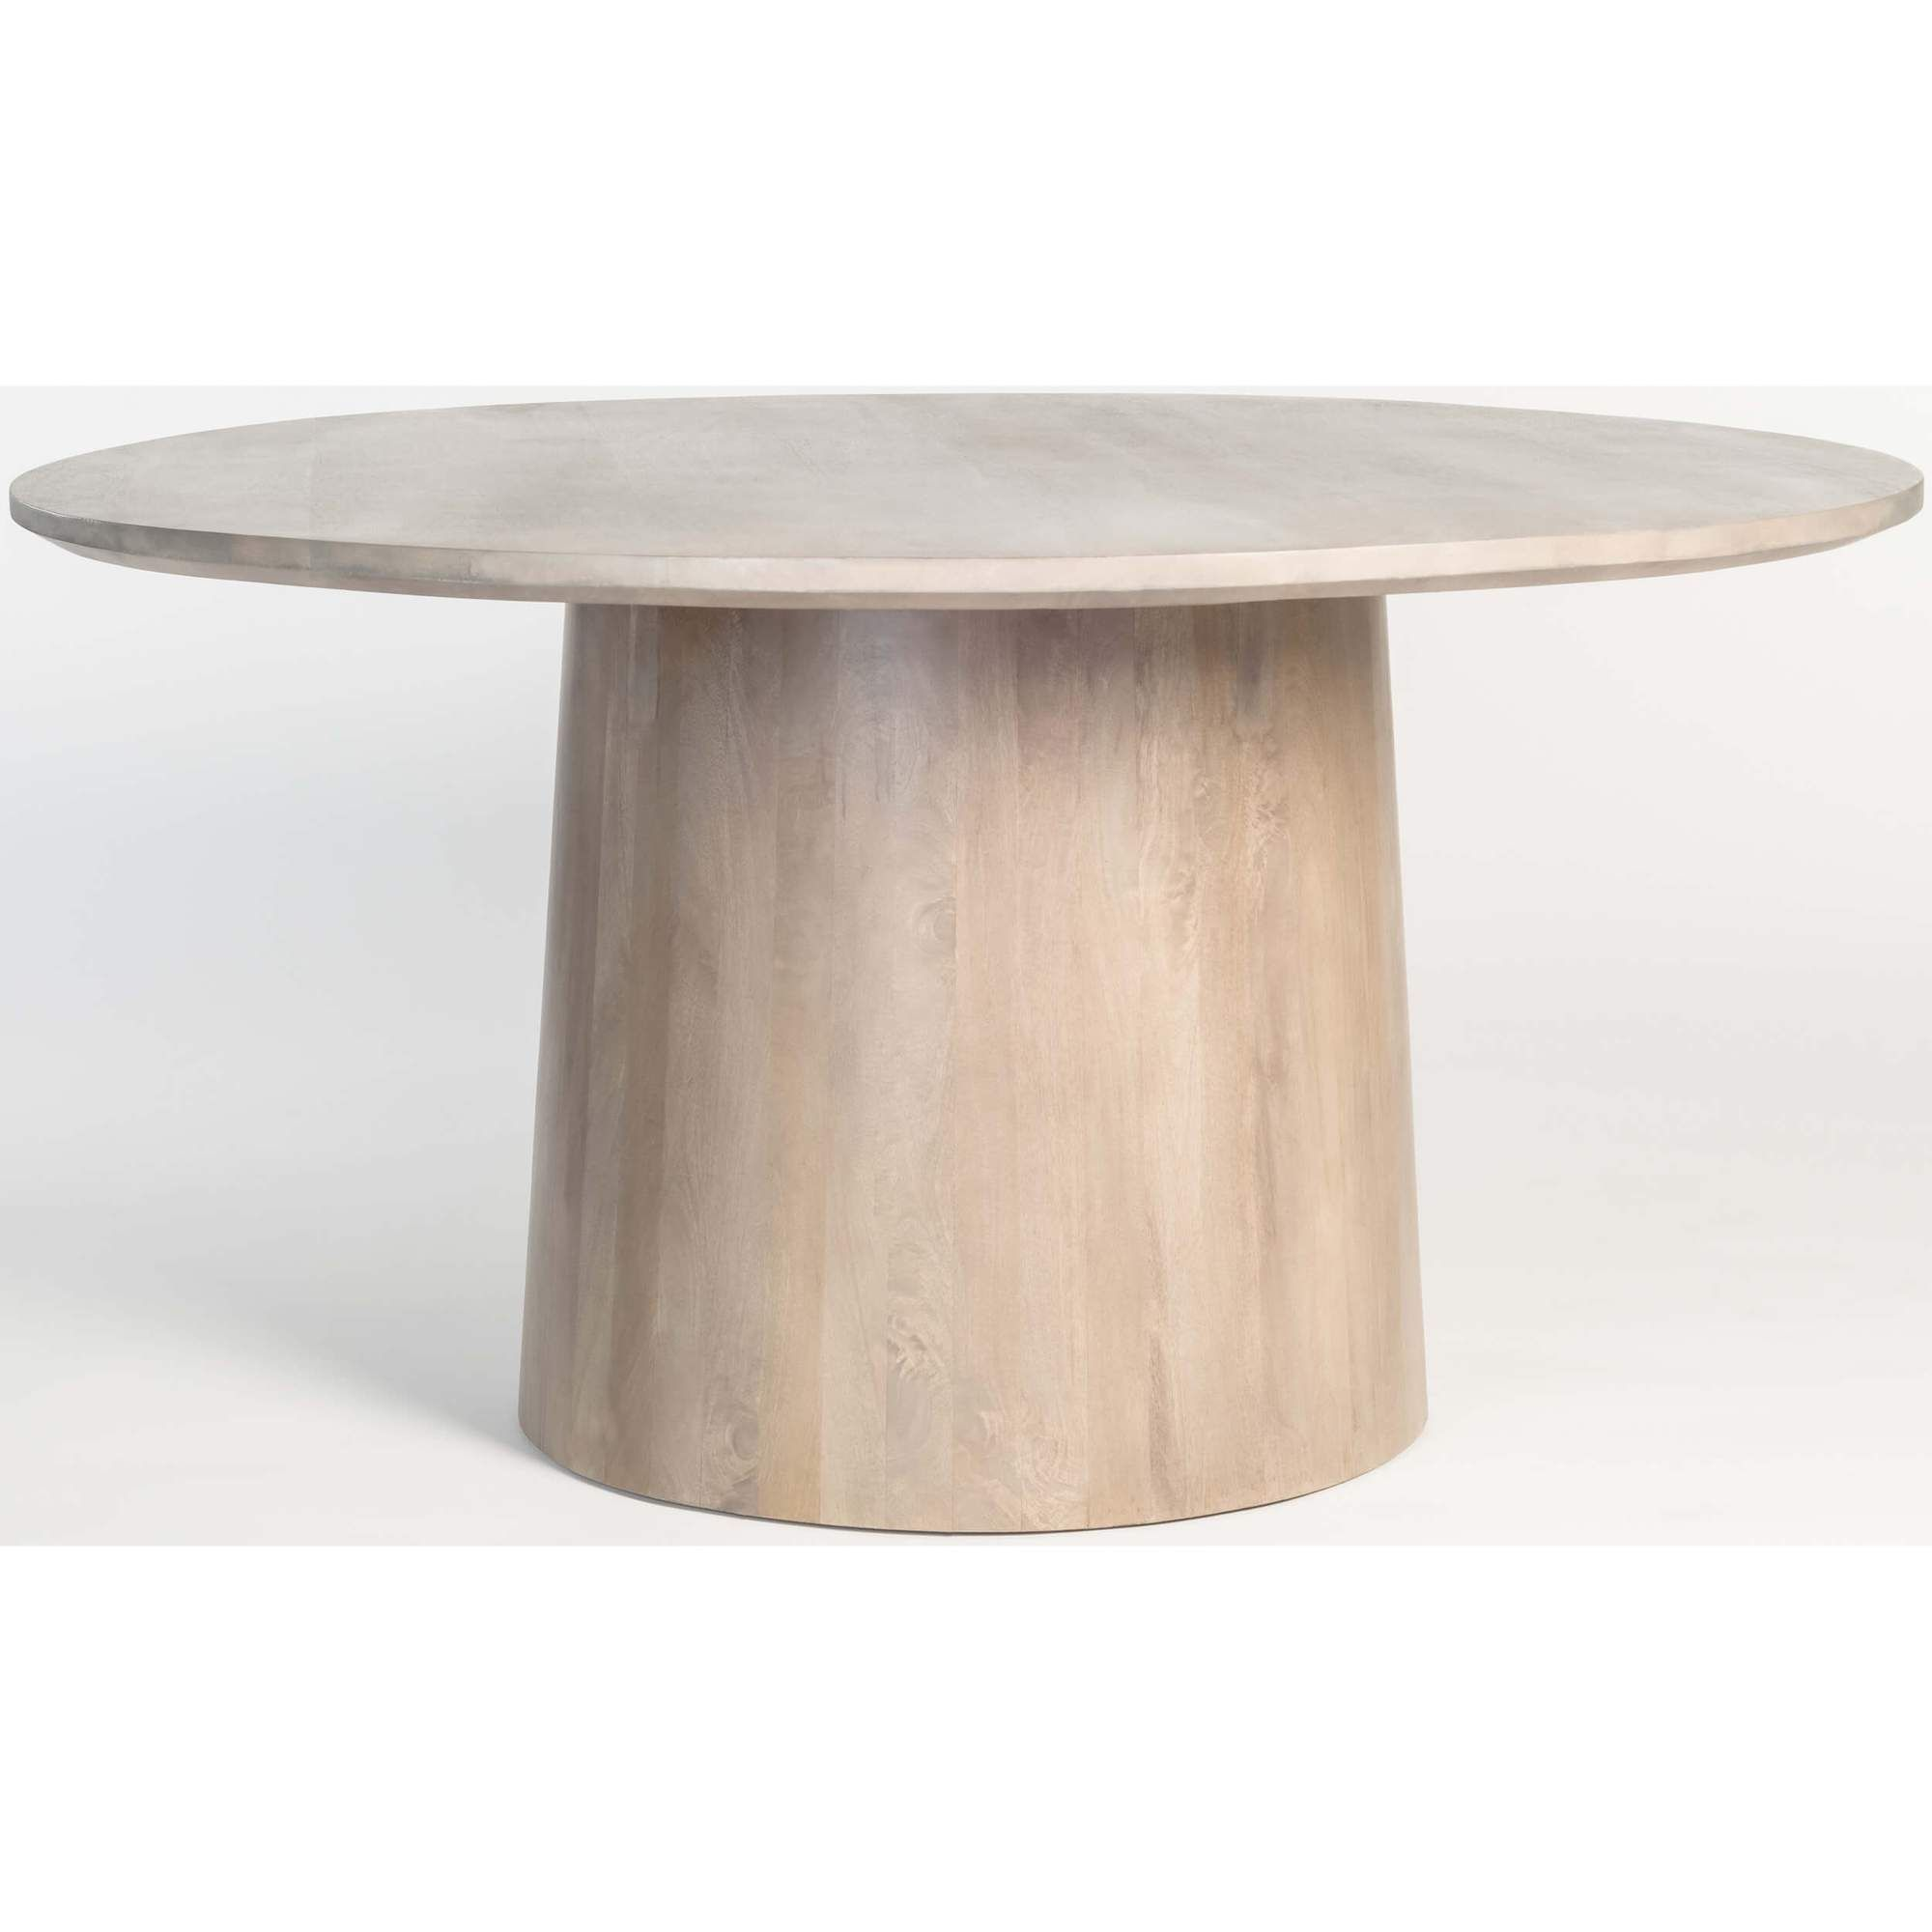 Merrick Dining Table In 2021 Round Wood Dining Table Round Pedestal Dining Table Dining Table Decor